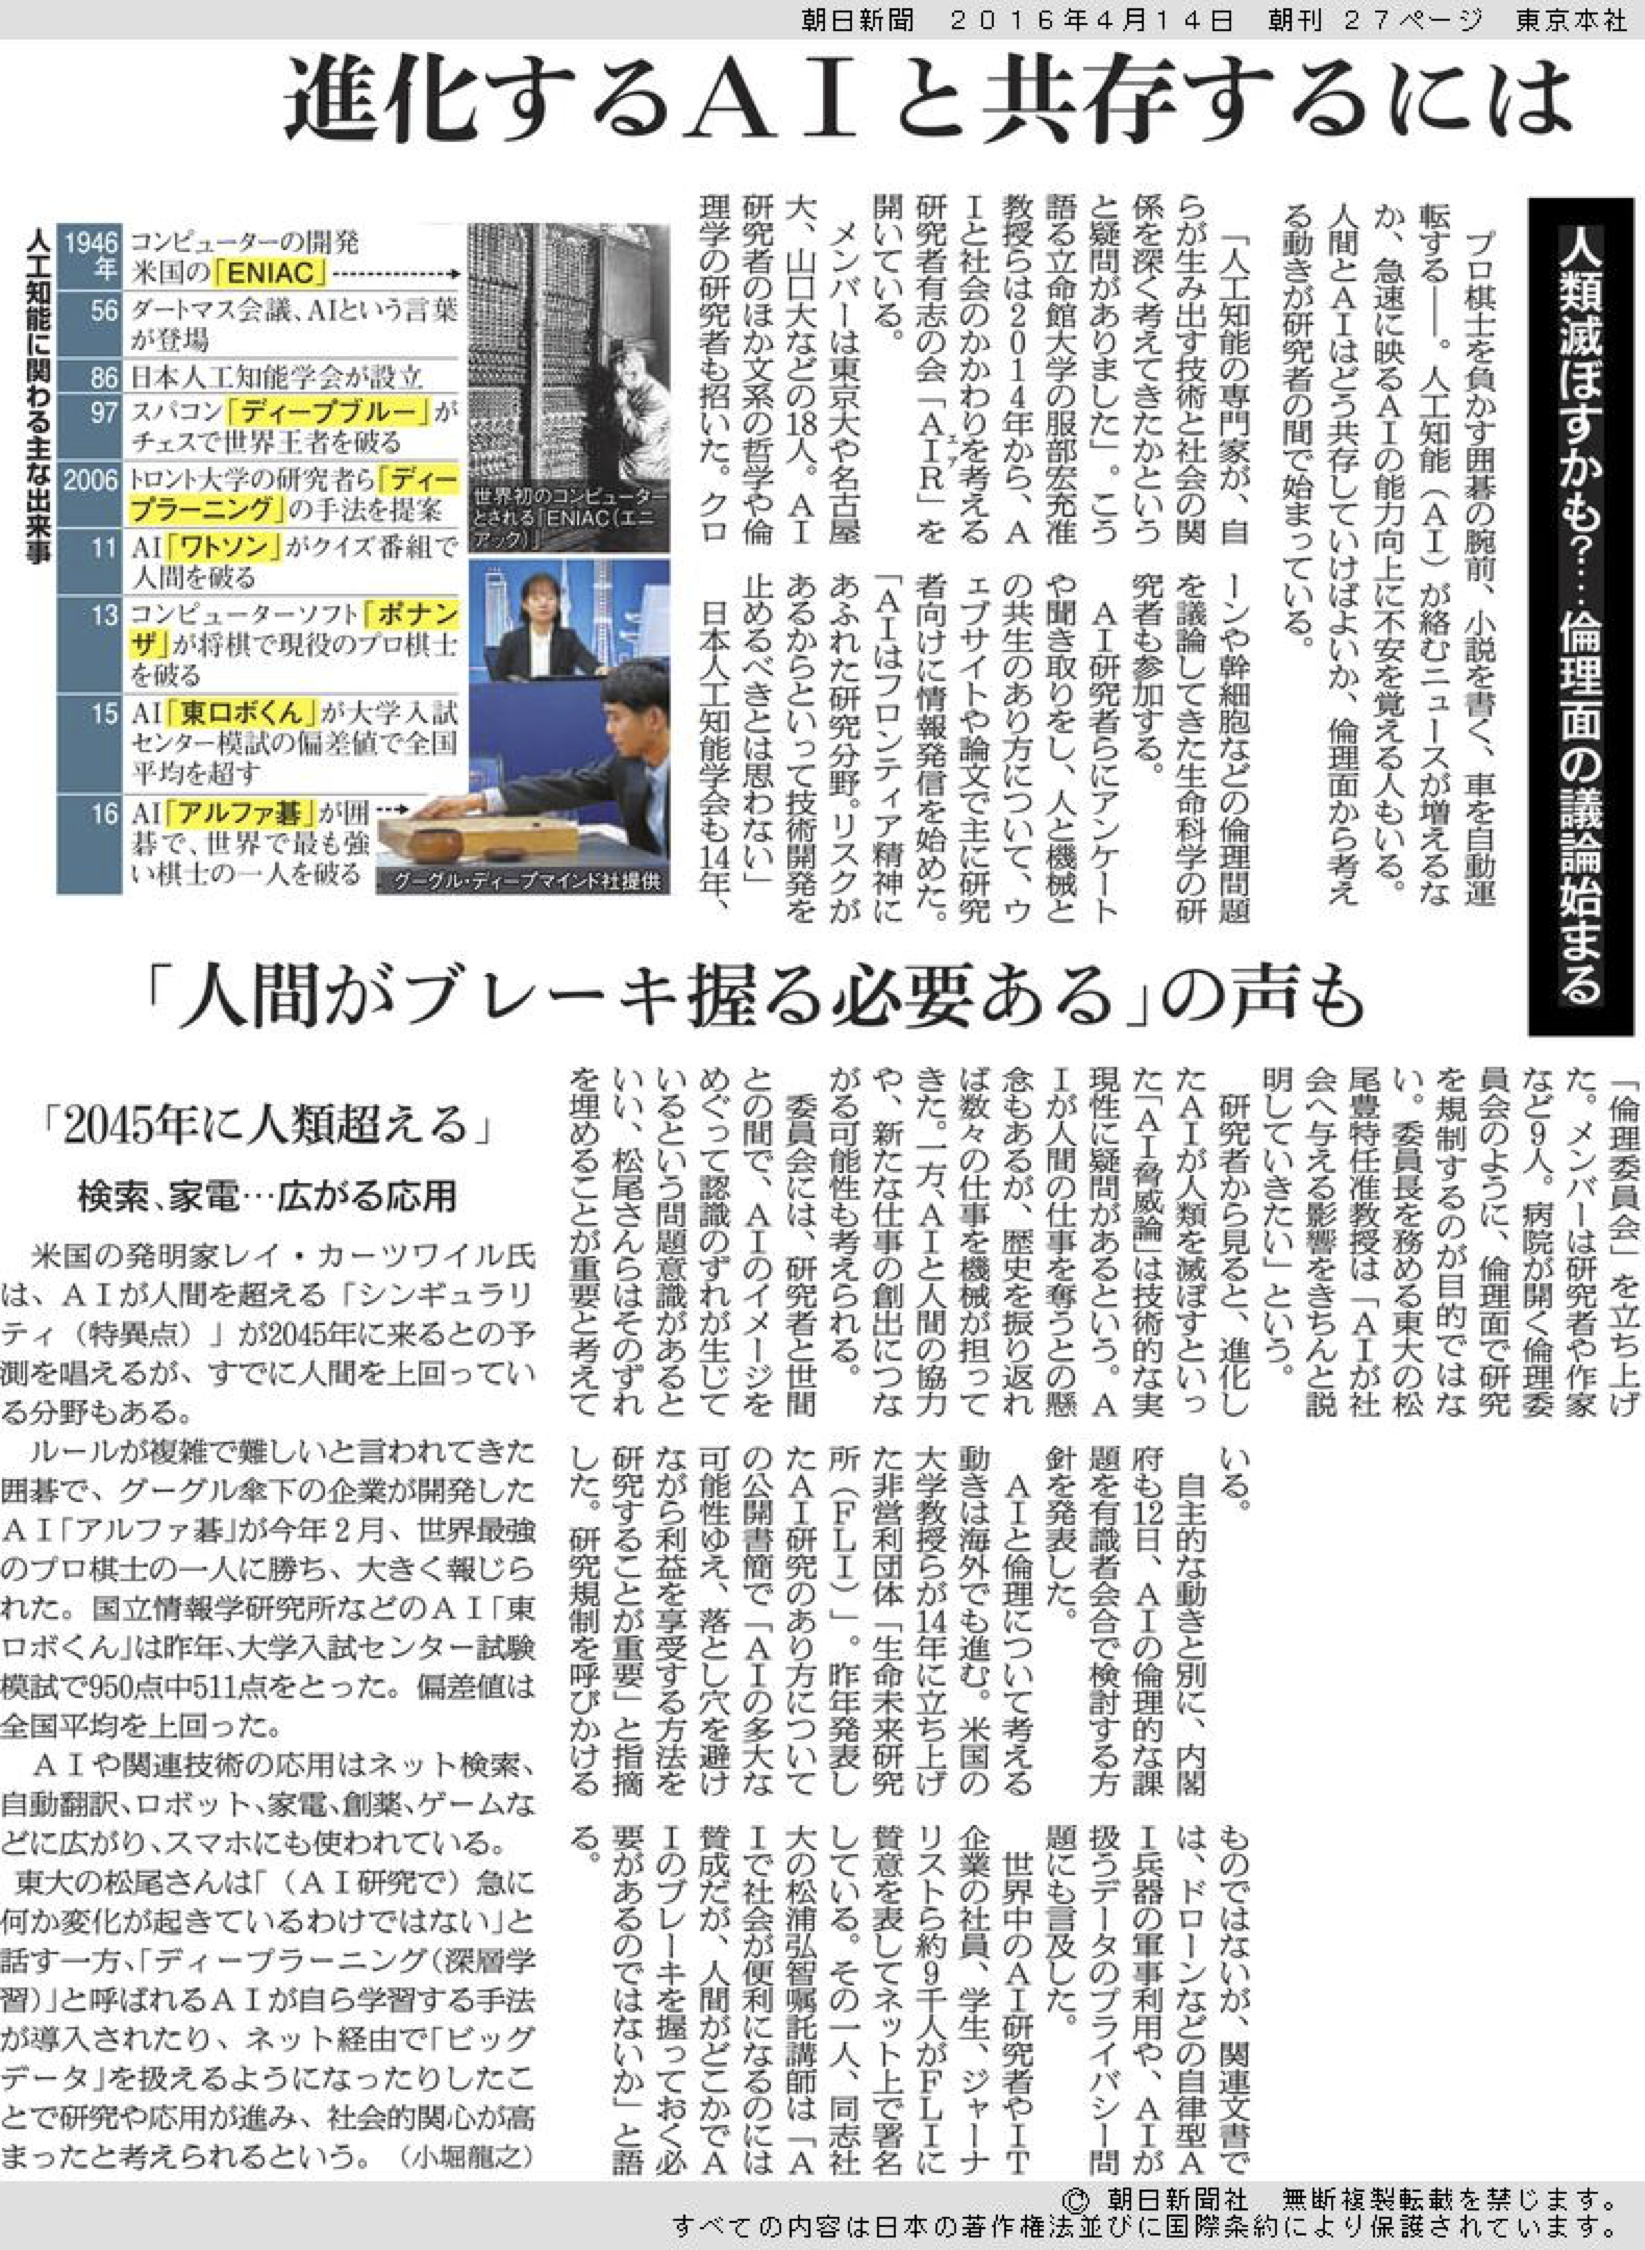 AIR-AsahiPaper-Article-20160414